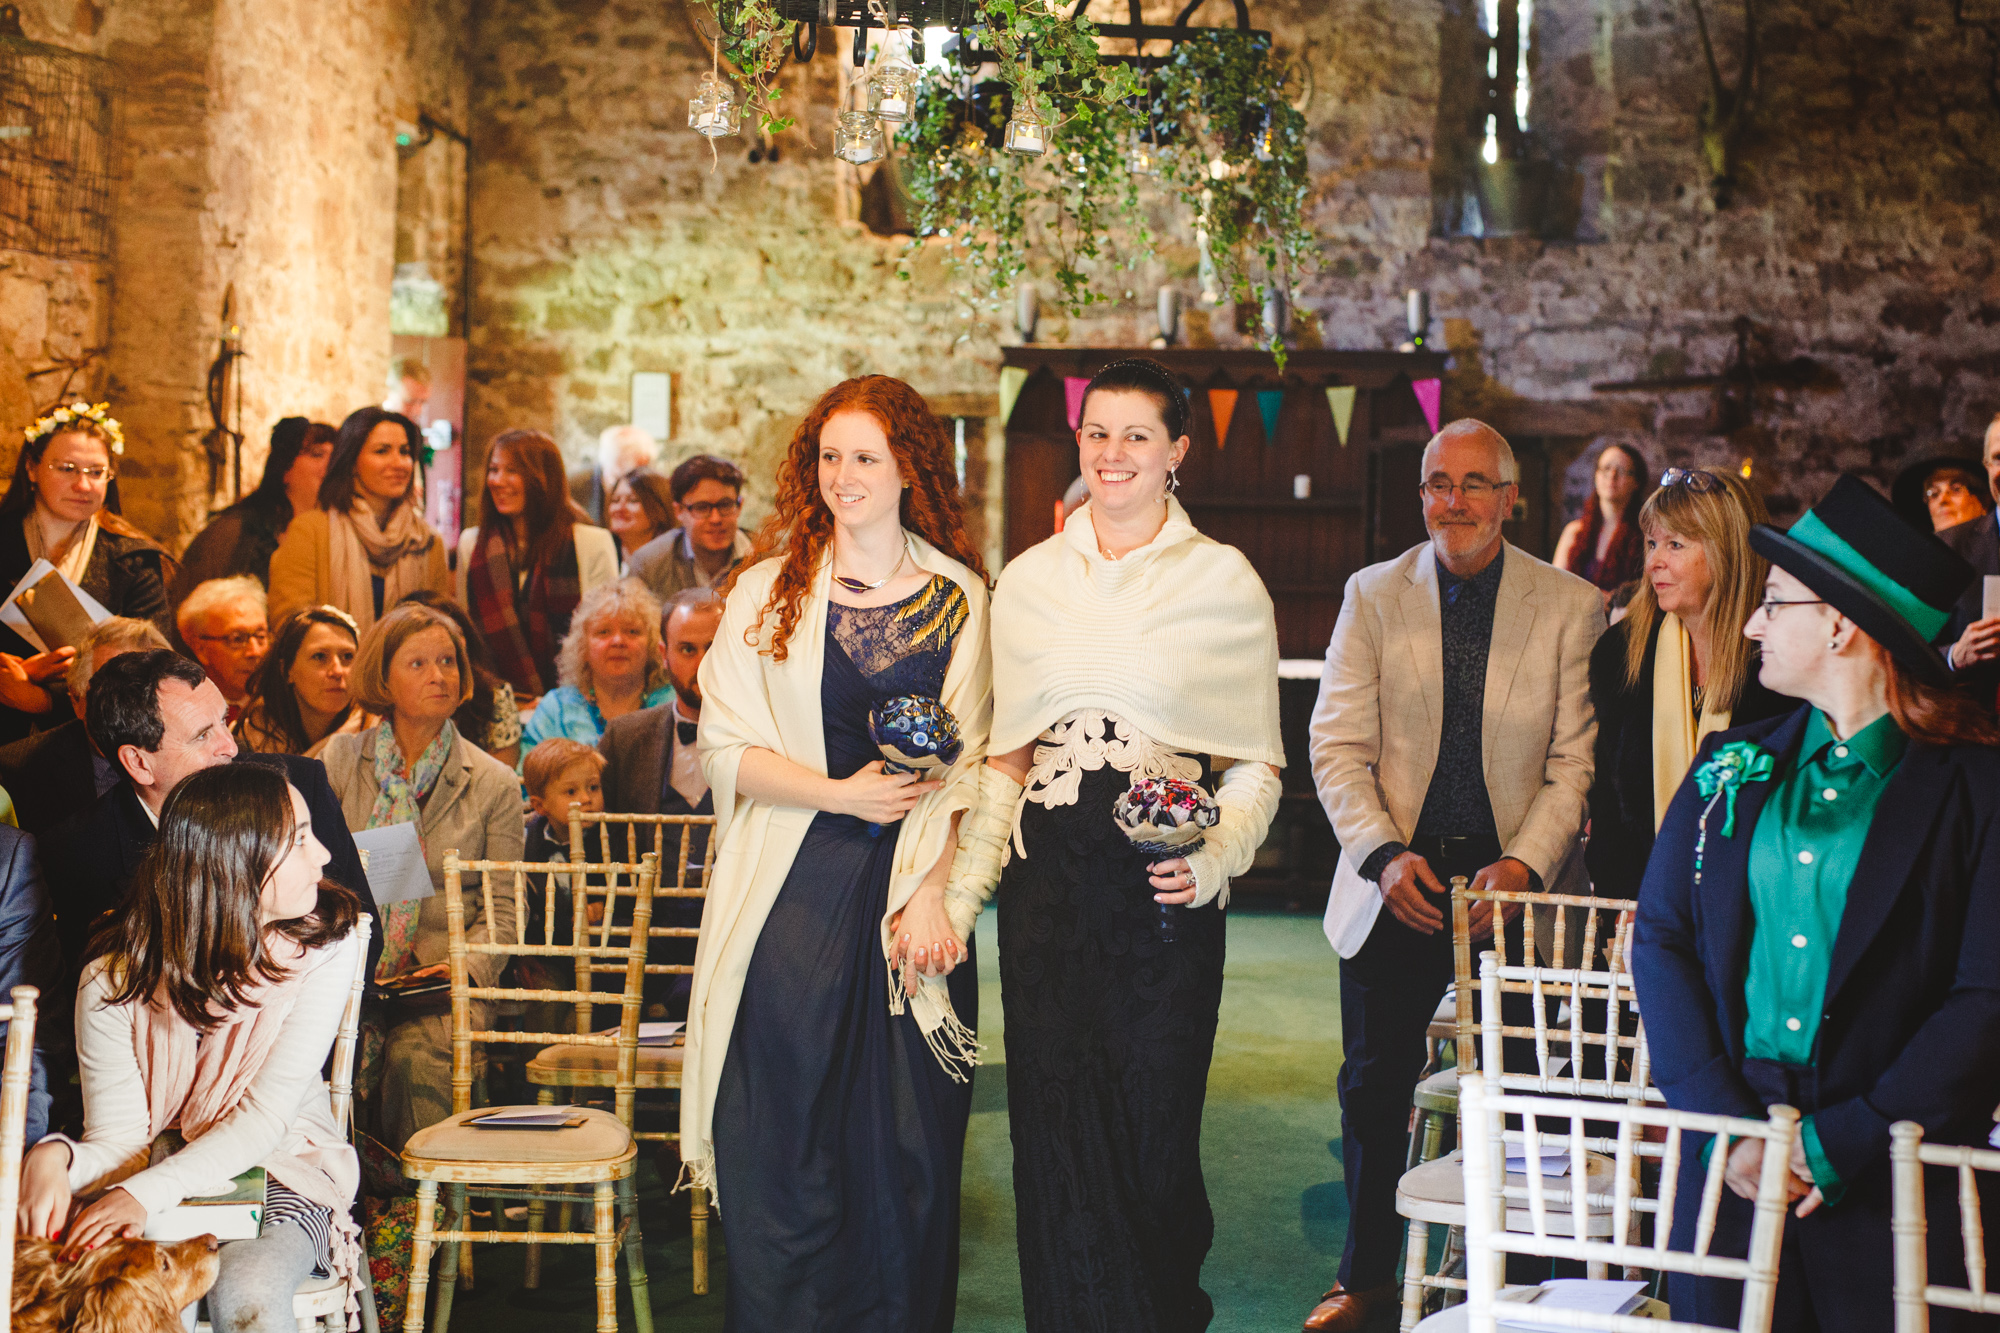 usk-castle-alternative-wedding-photographer-uk-camera-hannah-3.jpg